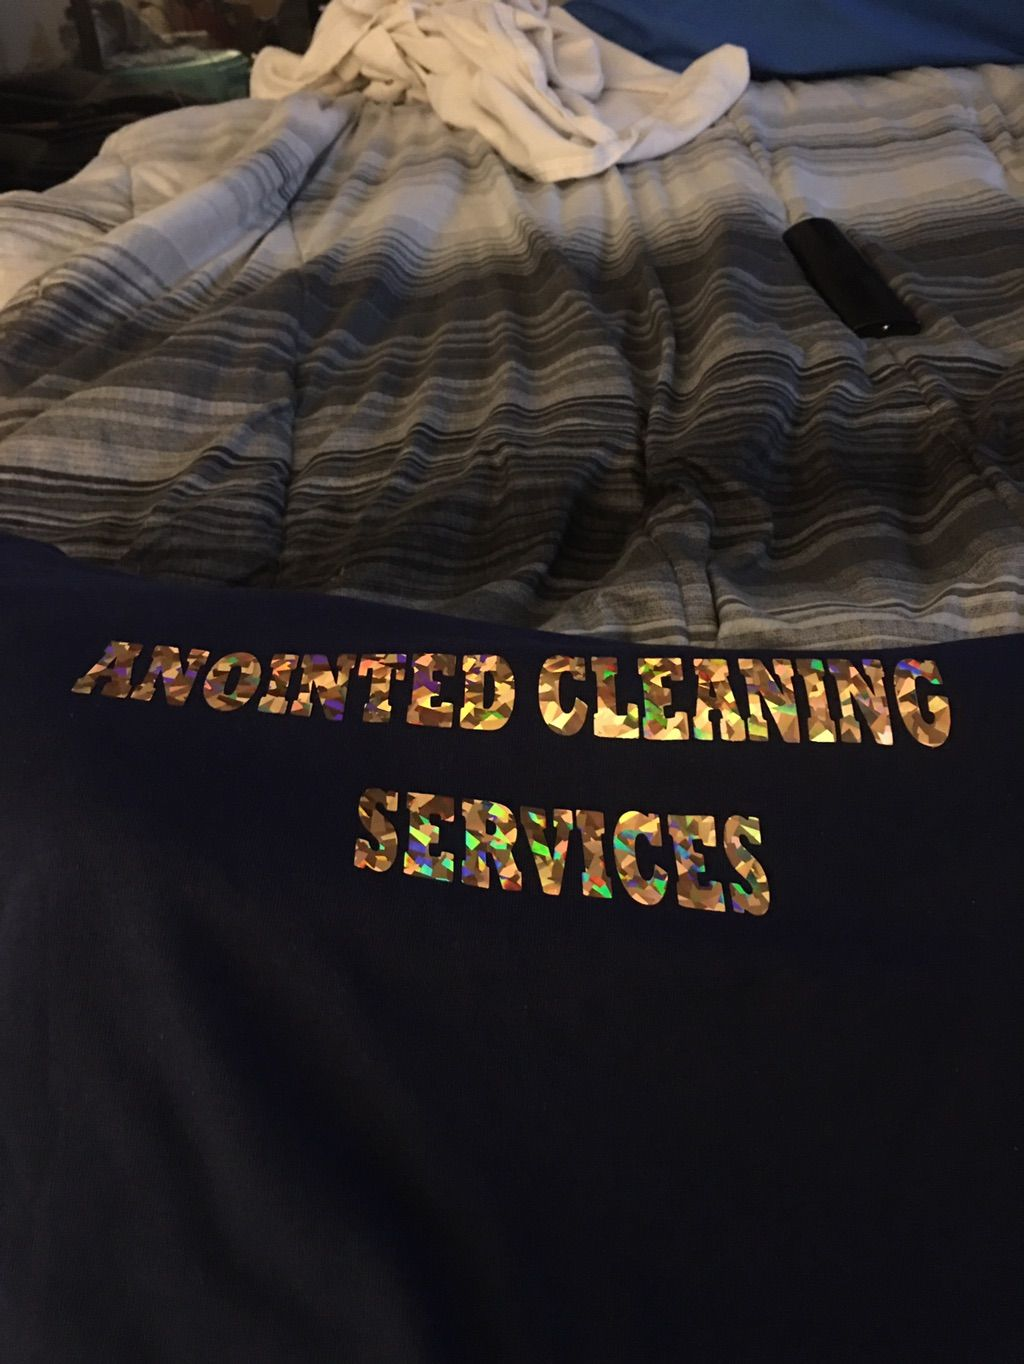 Anointed sisters cleaning service